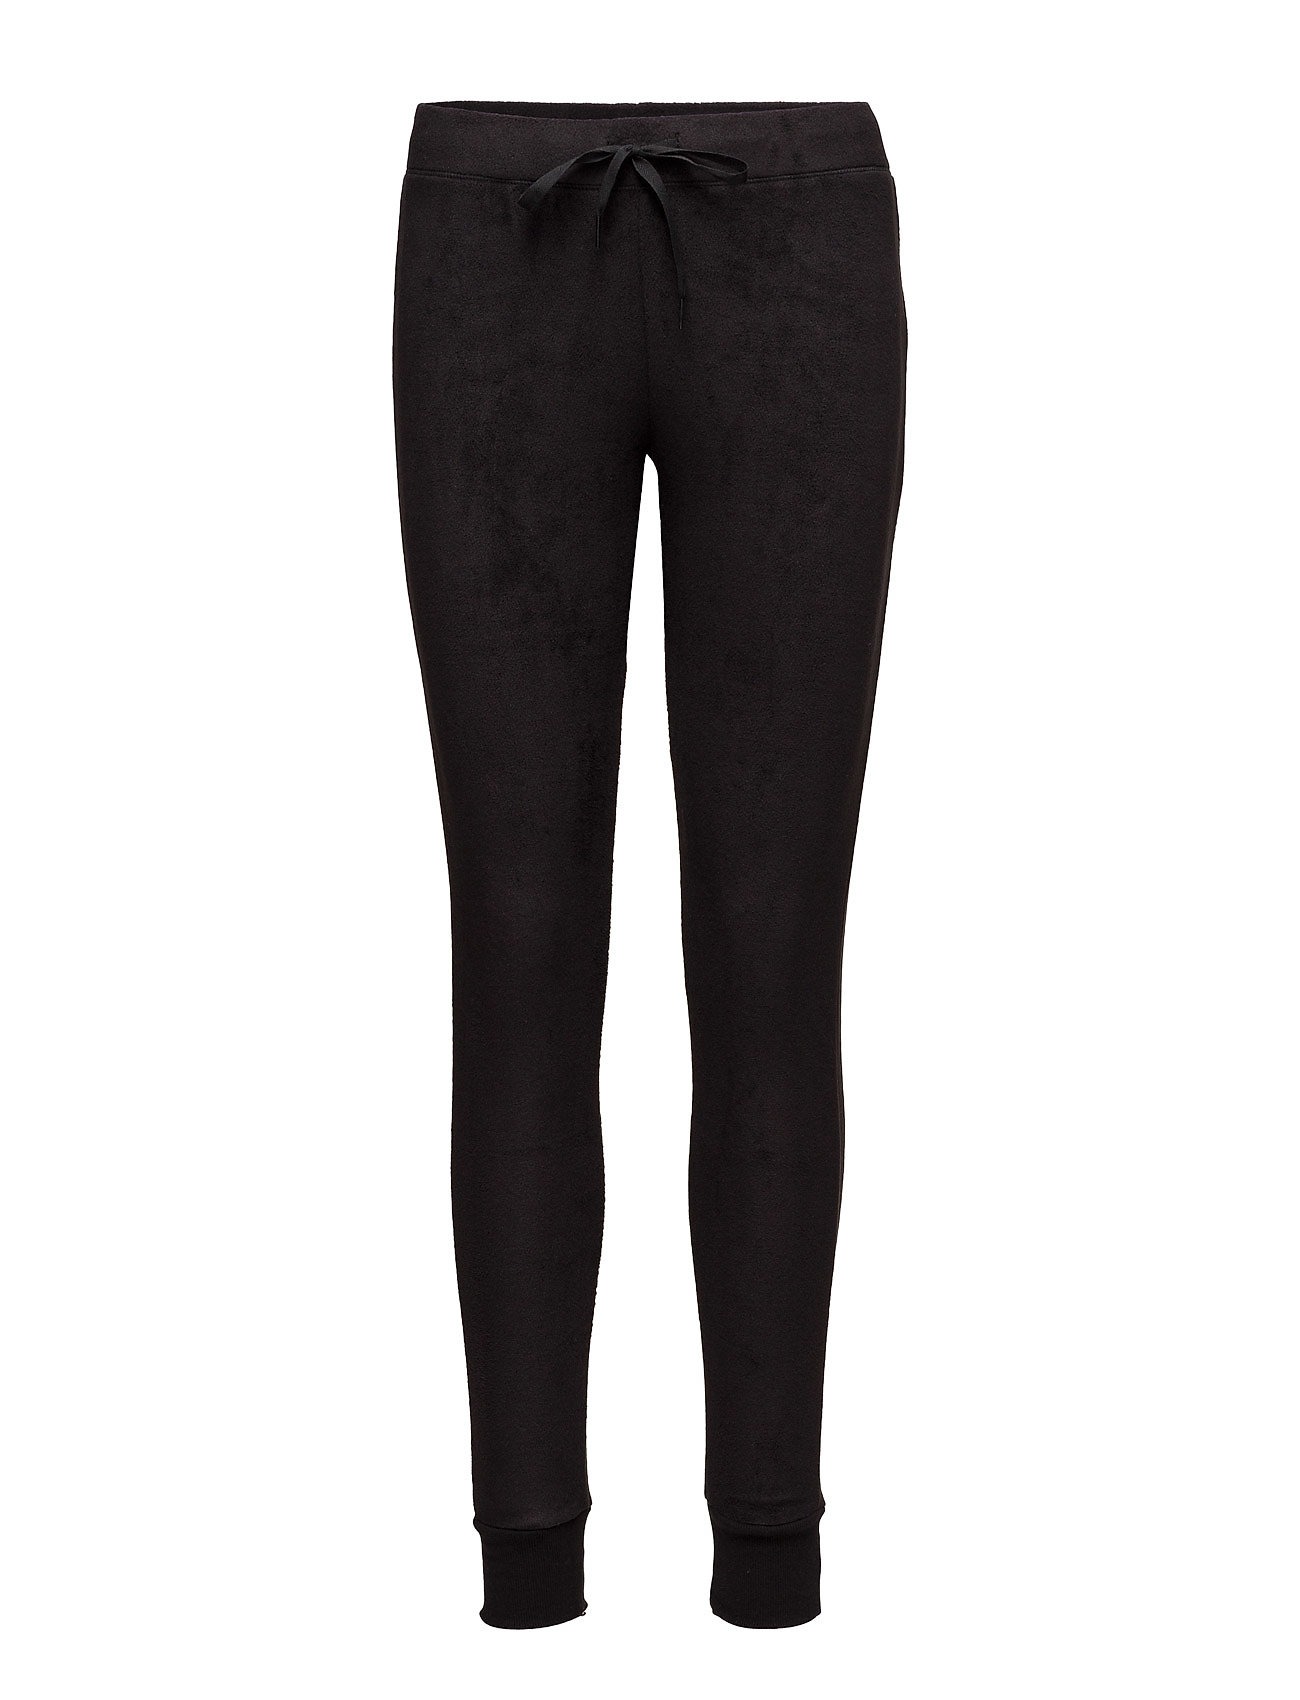 Dkny Stretch Loungers Leggings thumbnail